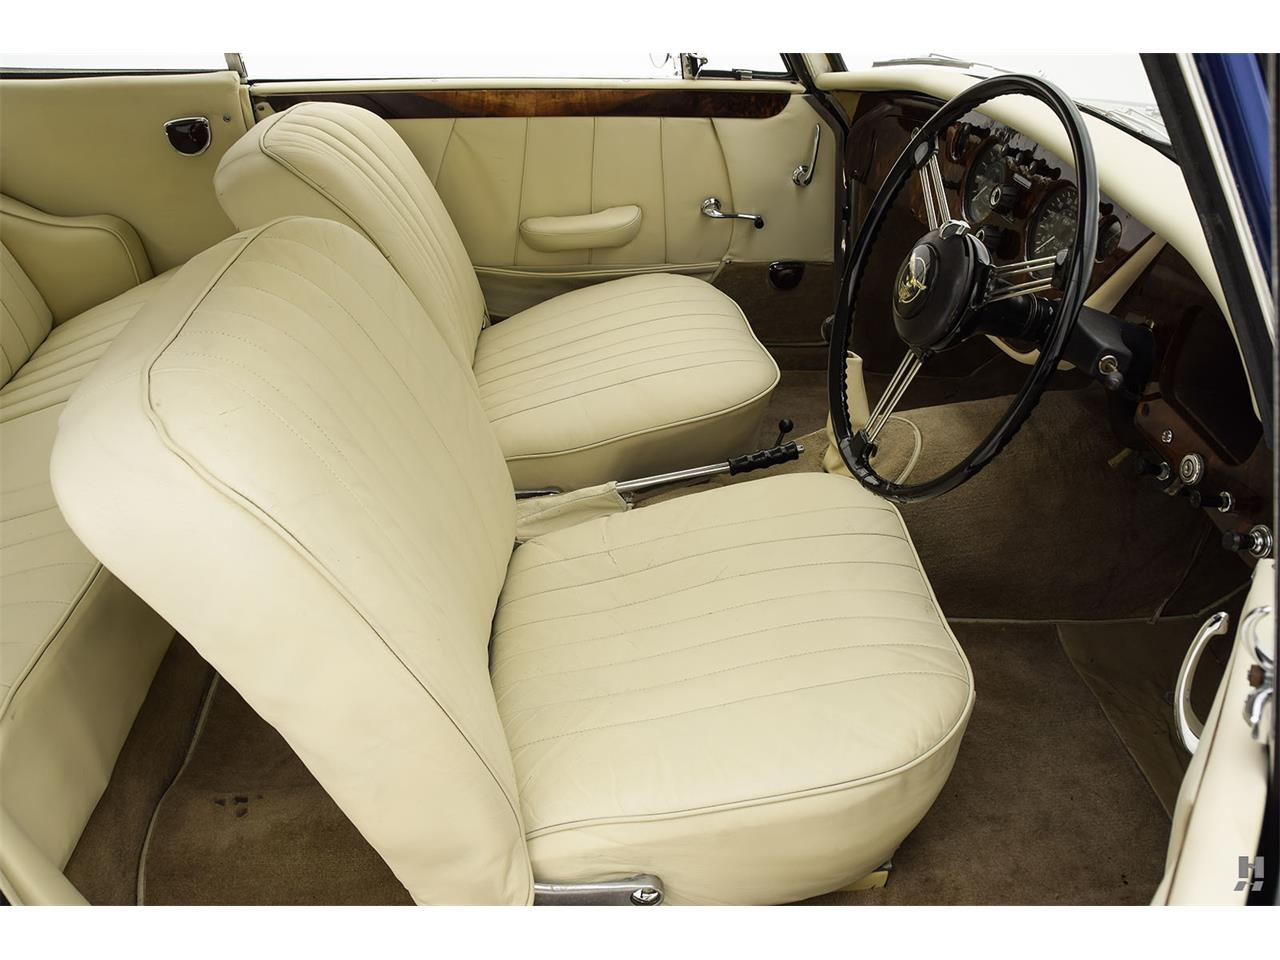 Large Picture of 1961 Alvis TD21 located in Saint Louis Missouri - $49,500.00 Offered by Hyman Ltd. Classic Cars - LEAR